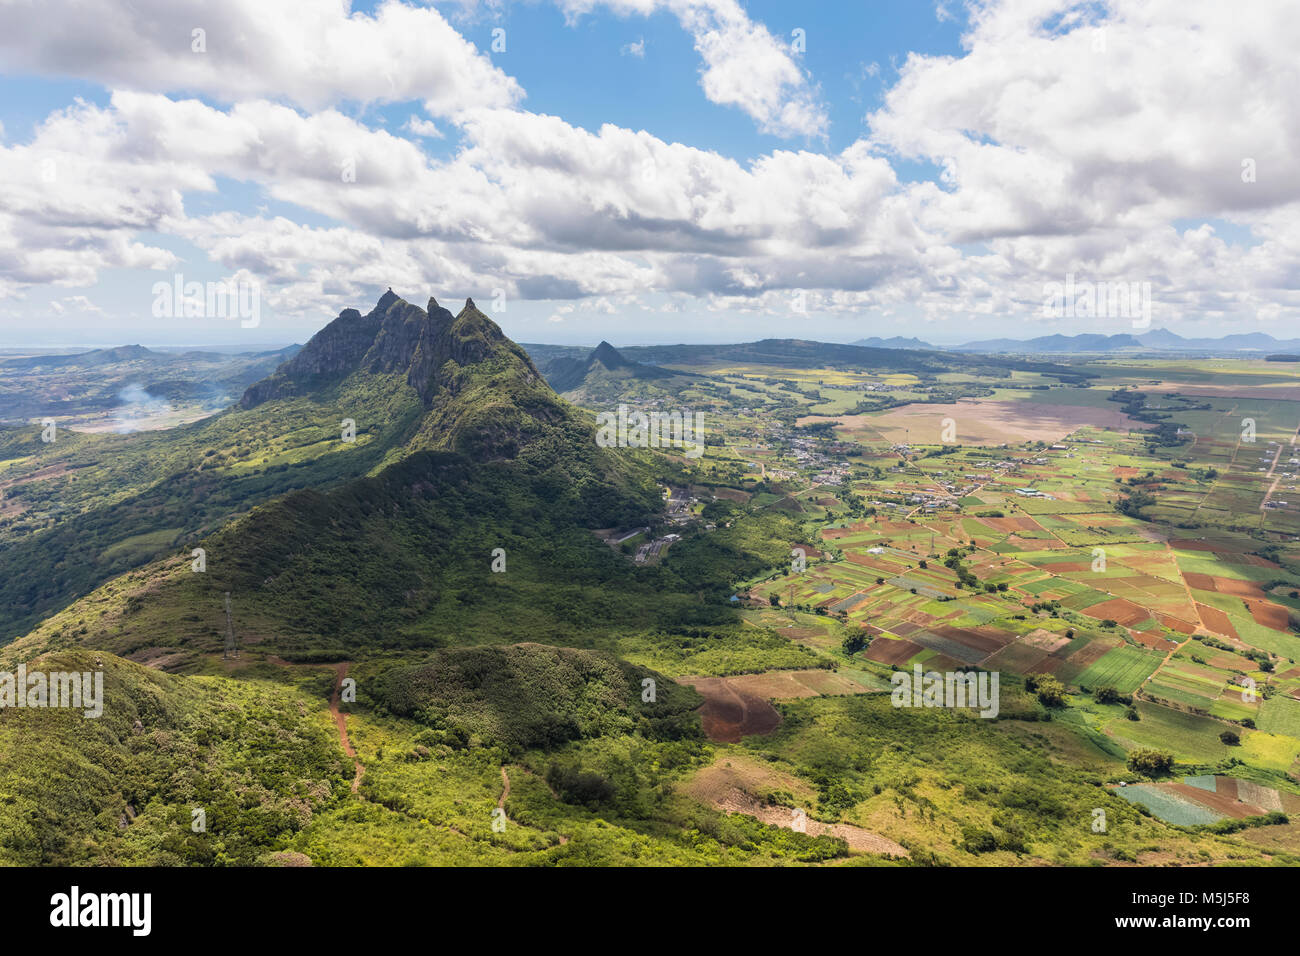 Mauritius, View from Le Pouce Mountain to summits Grand Peak,  Creve Coeur and Pieter Both - Stock Image